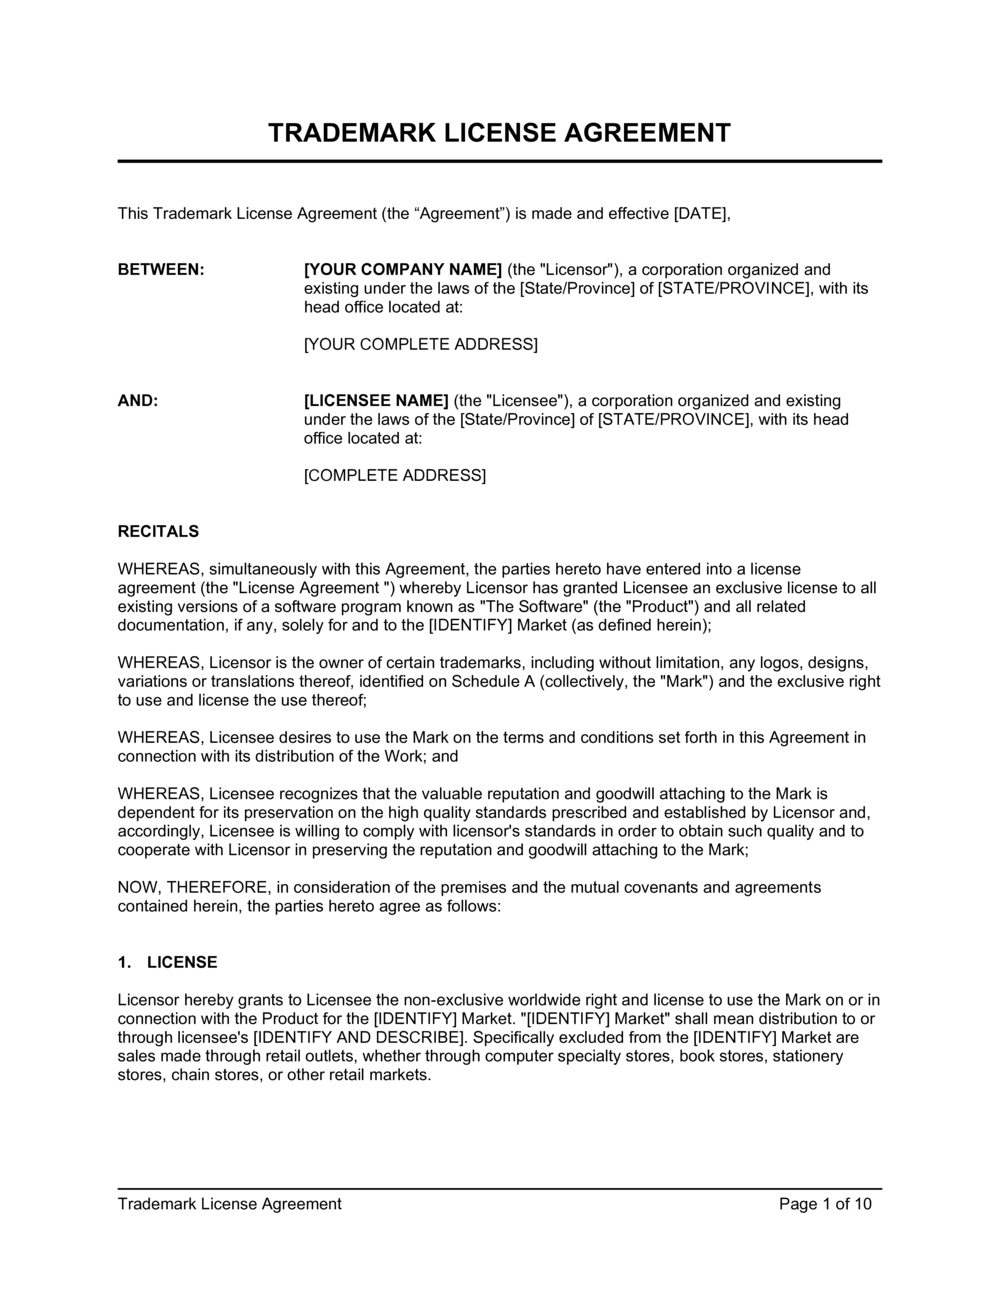 Business-in-a-Box's Trademark License Agreement For Software Template